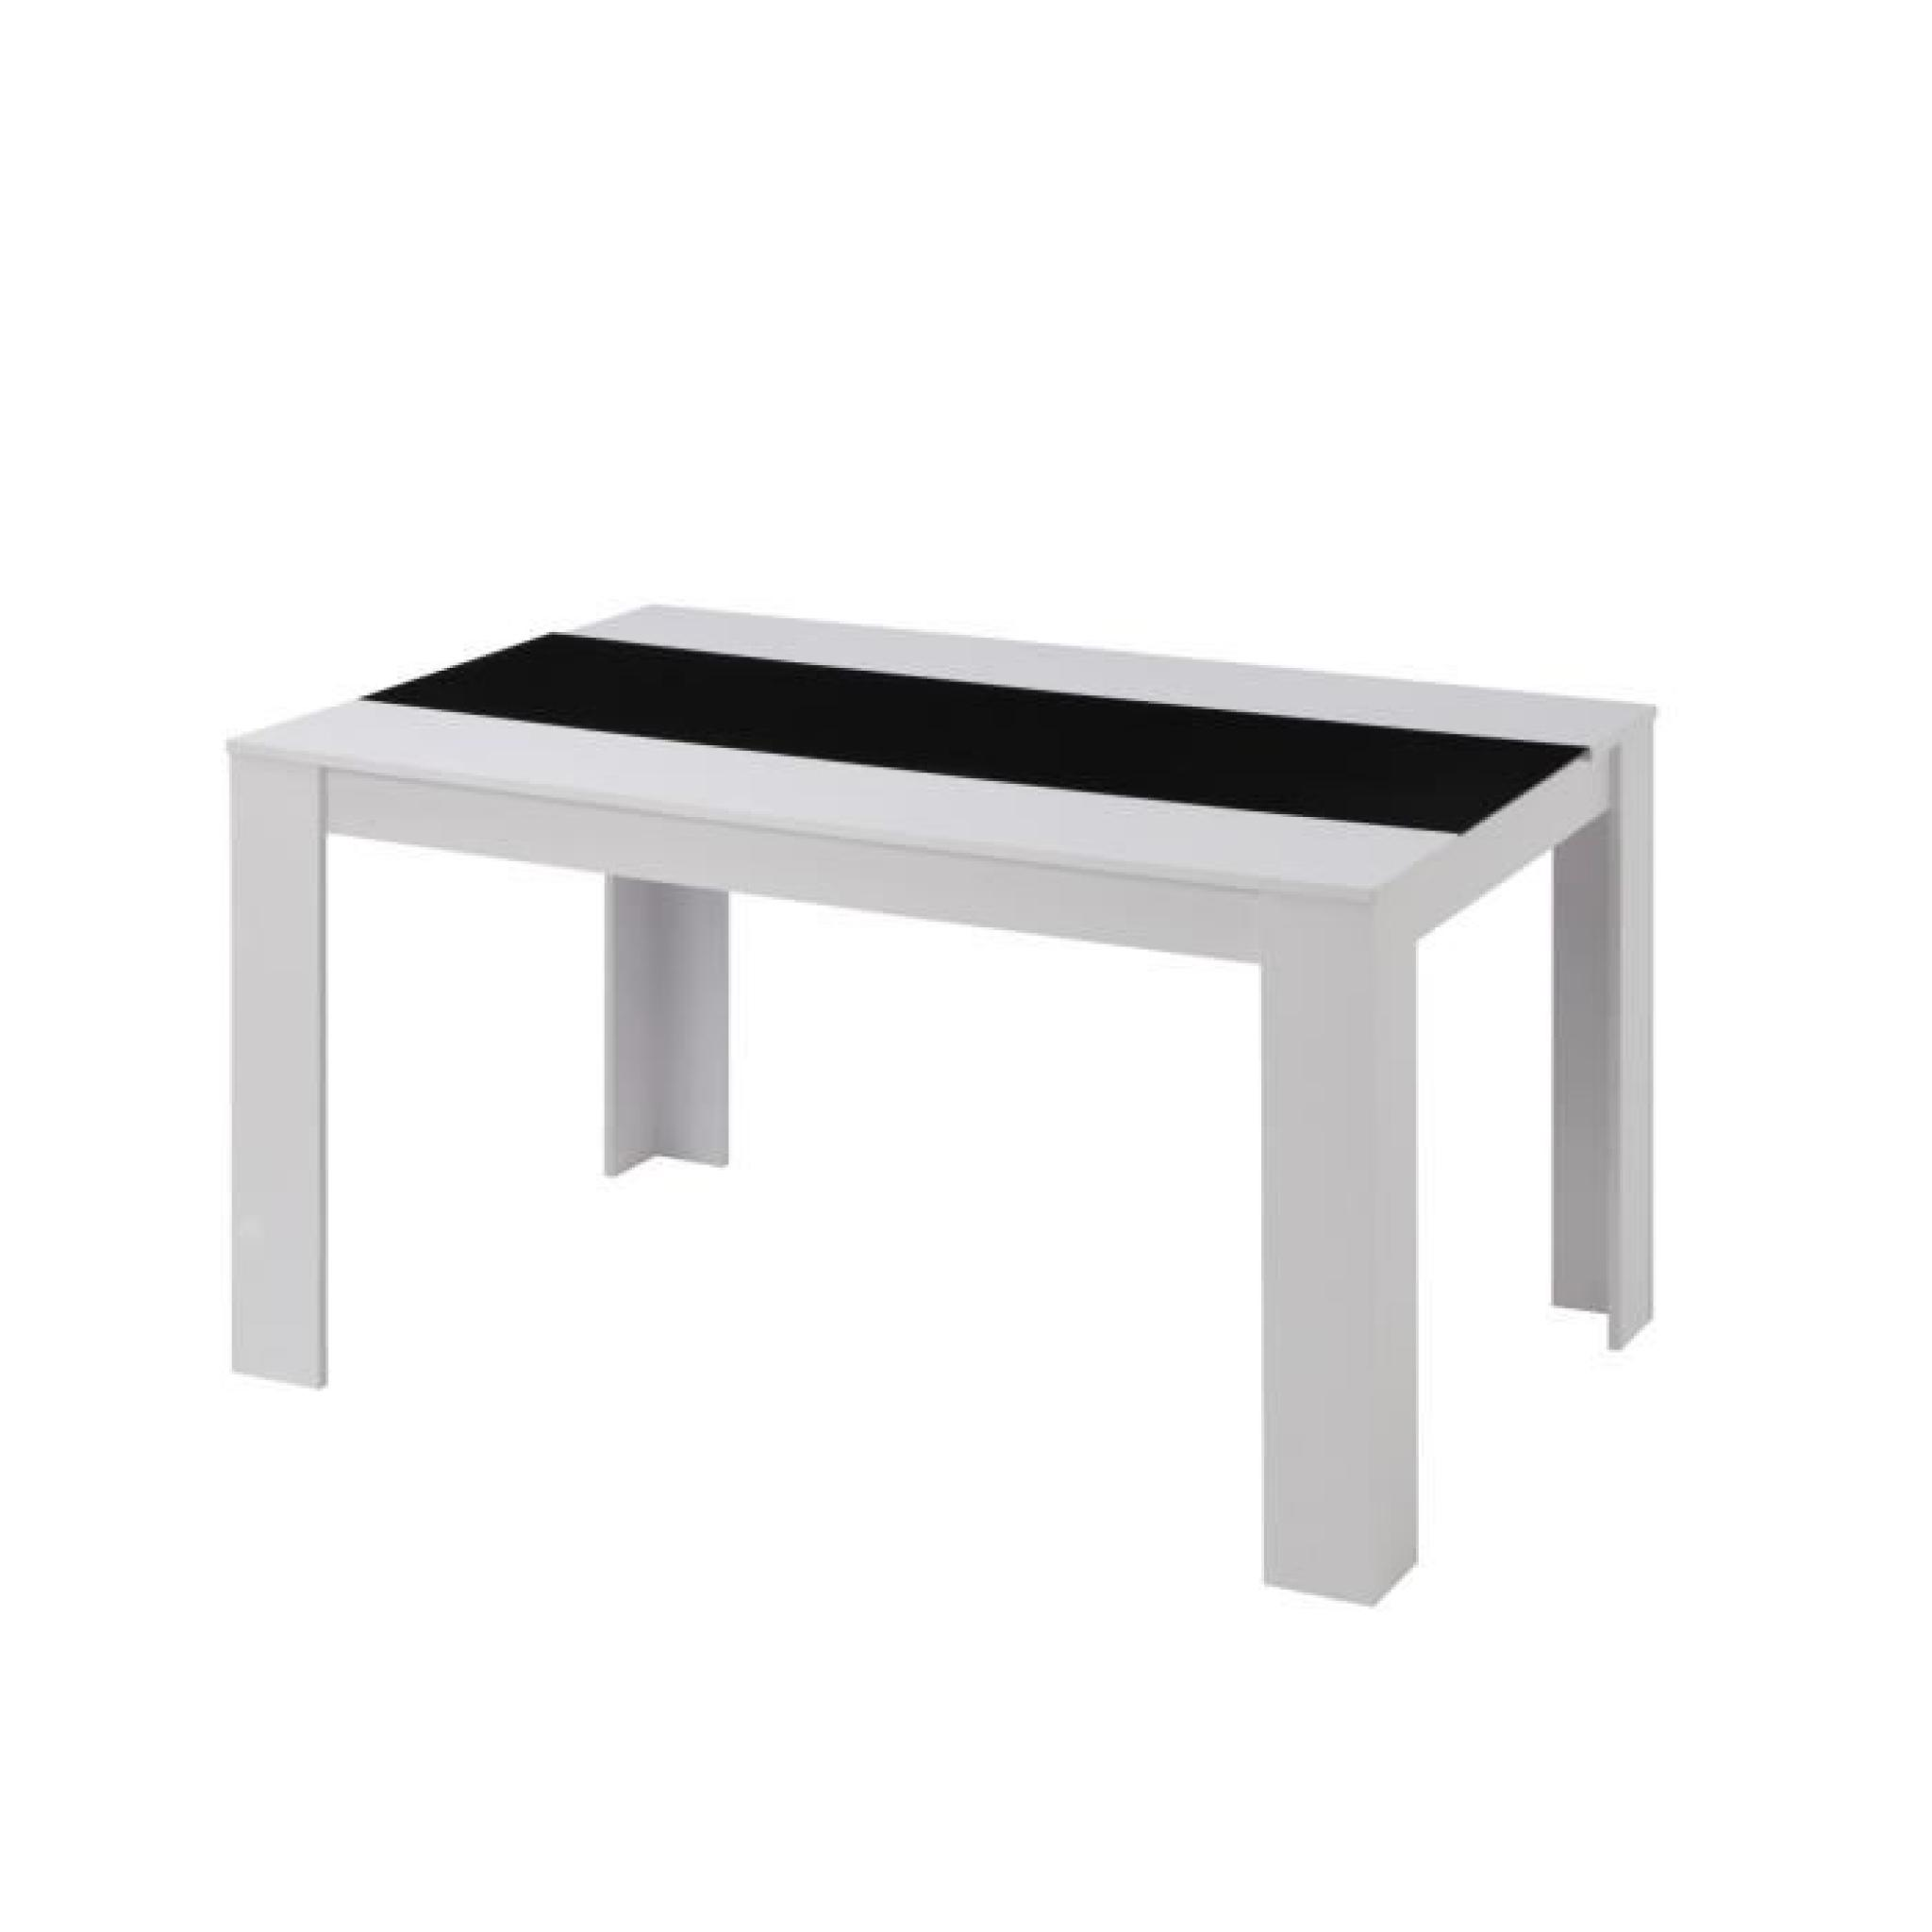 damia table manger 140x90cm noir et blanc achat vente table salle a manger pas cher. Black Bedroom Furniture Sets. Home Design Ideas